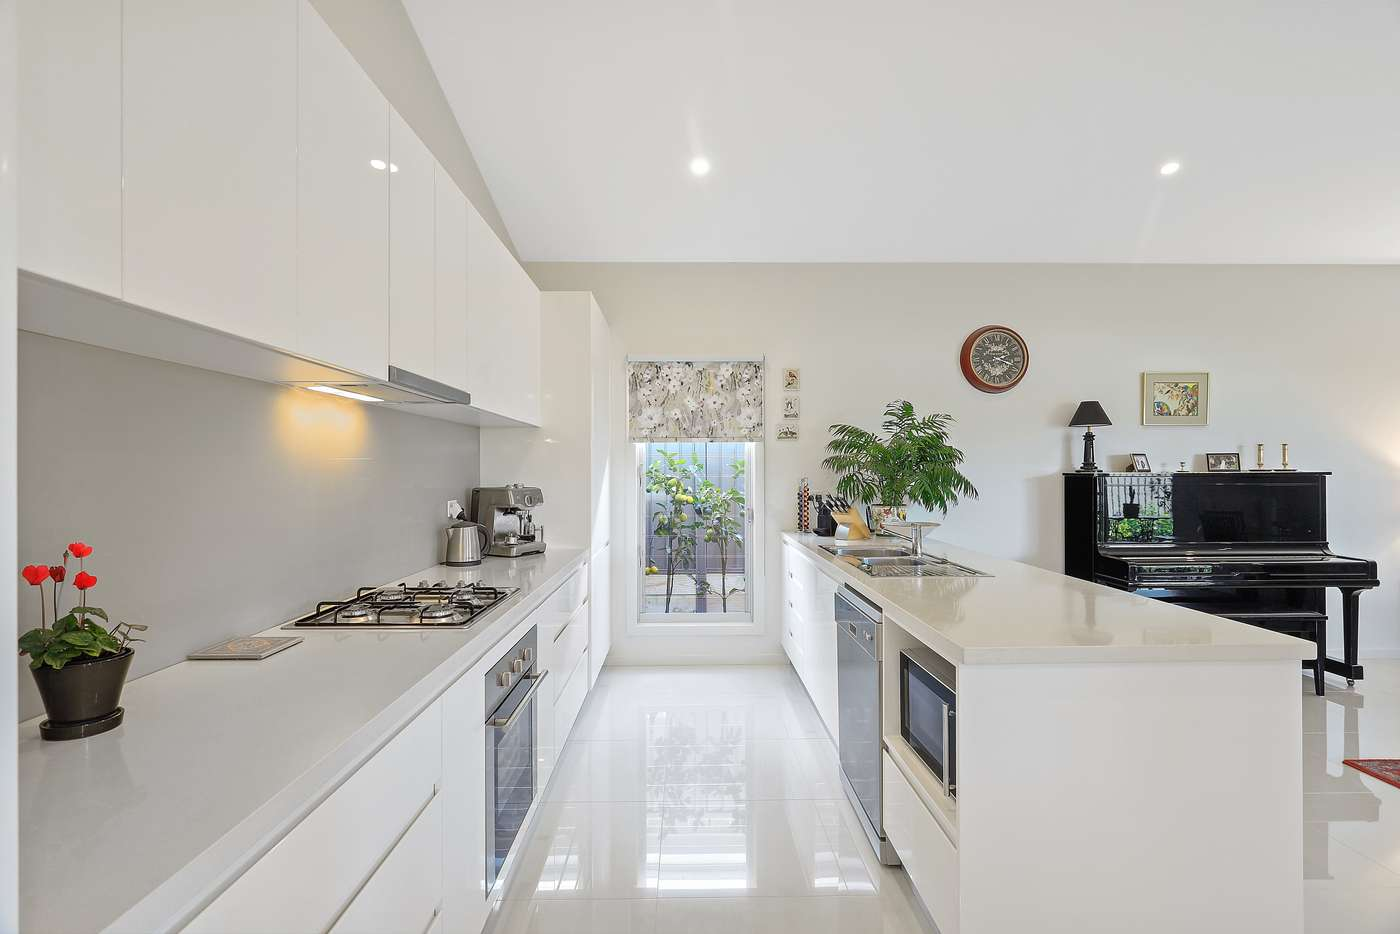 Fifth view of Homely house listing, 6 Trawler Street, Vincentia NSW 2540